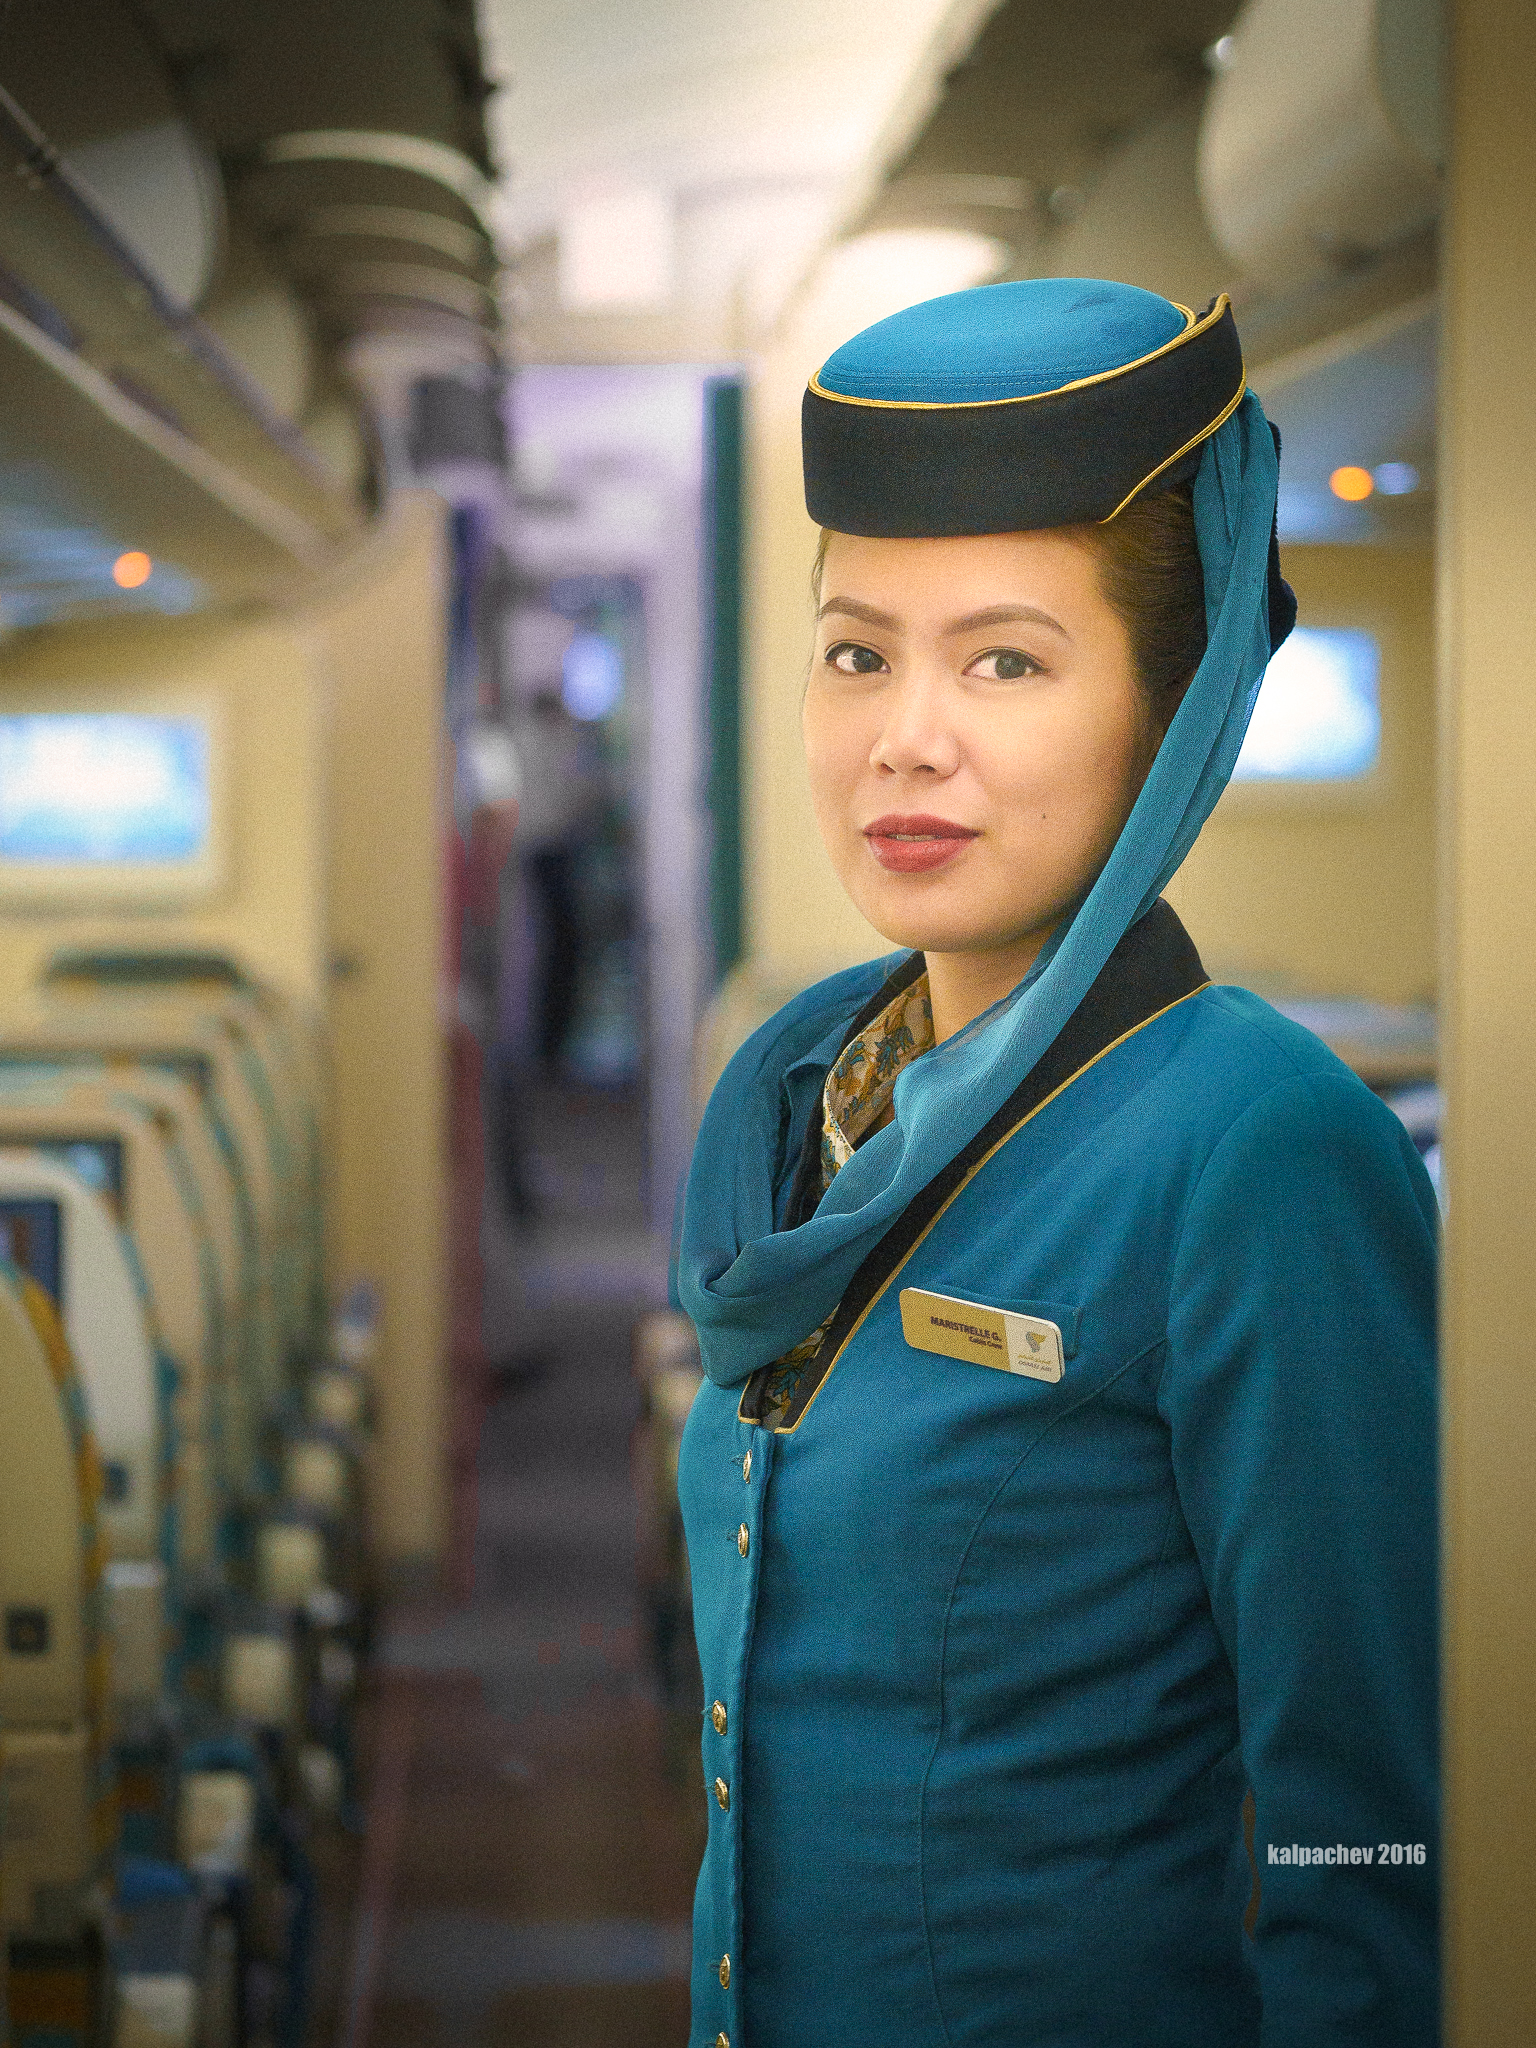 The beautiful flight crew of Oman Air #omanair